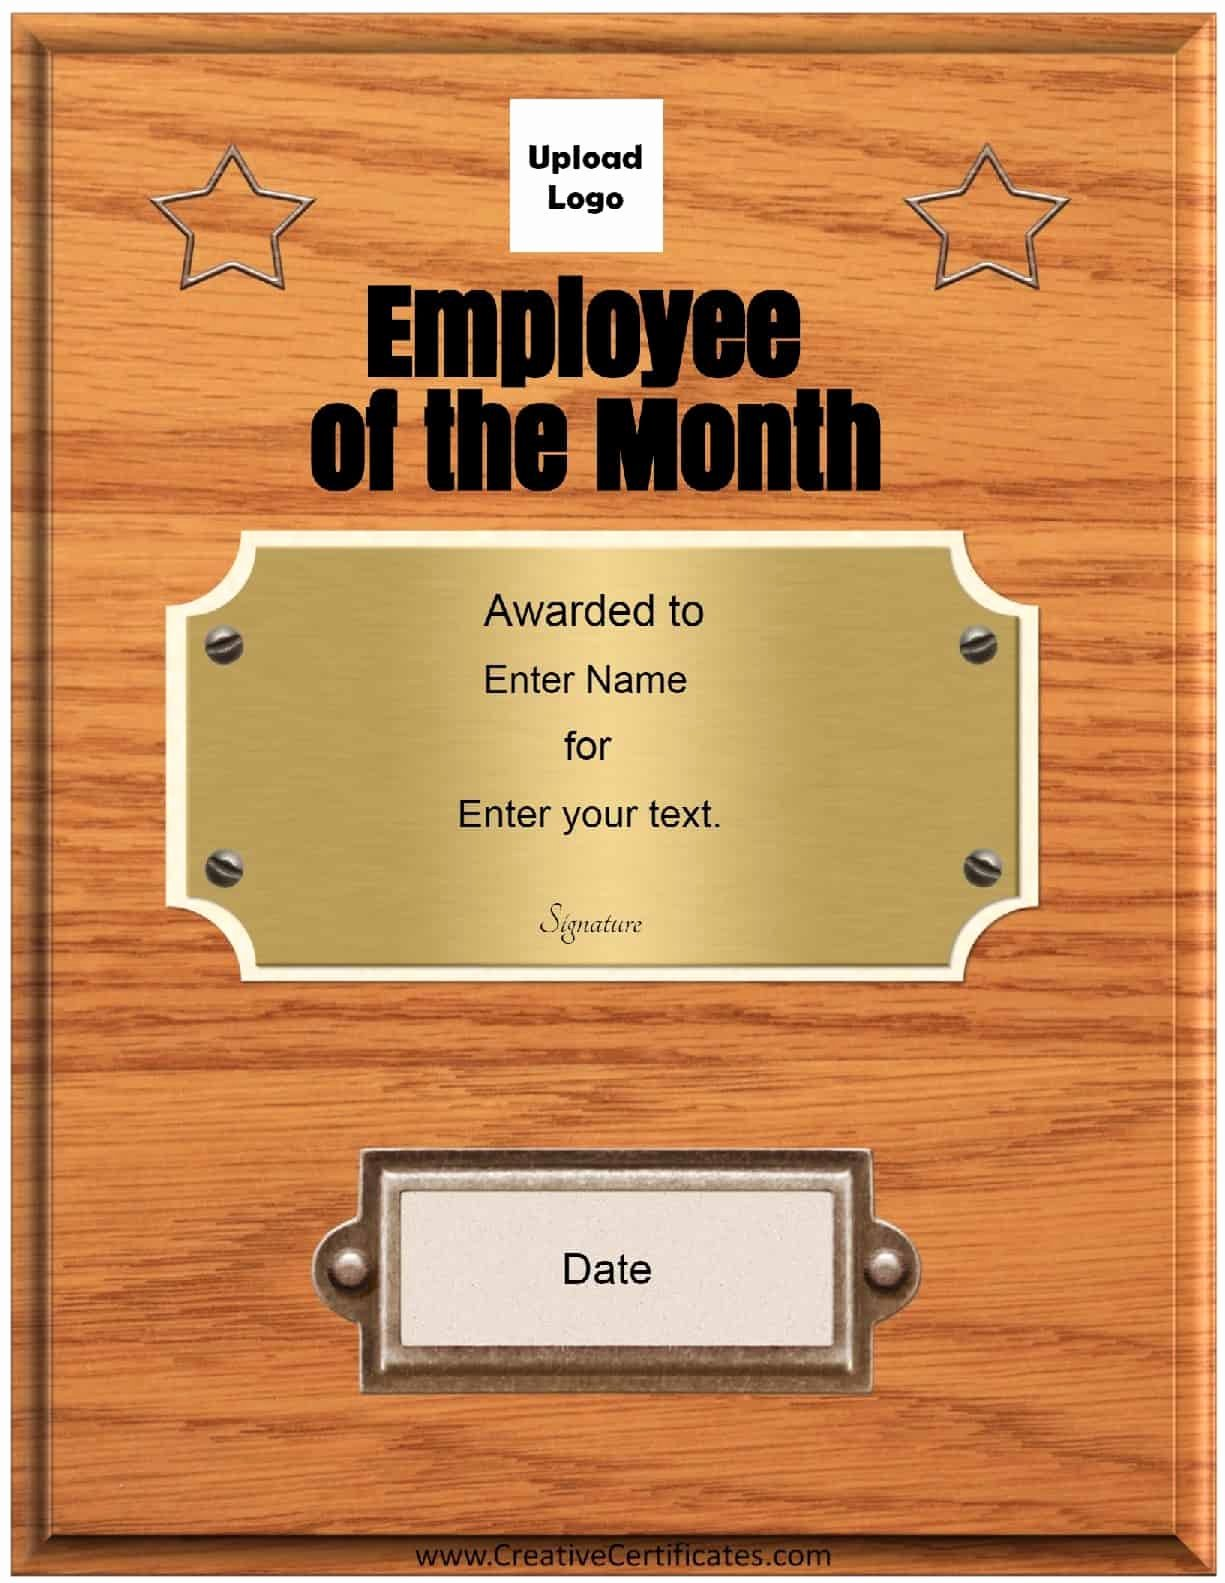 Employee Of the Month Photo Best Of Free Custom Employee Of the Month Certificate